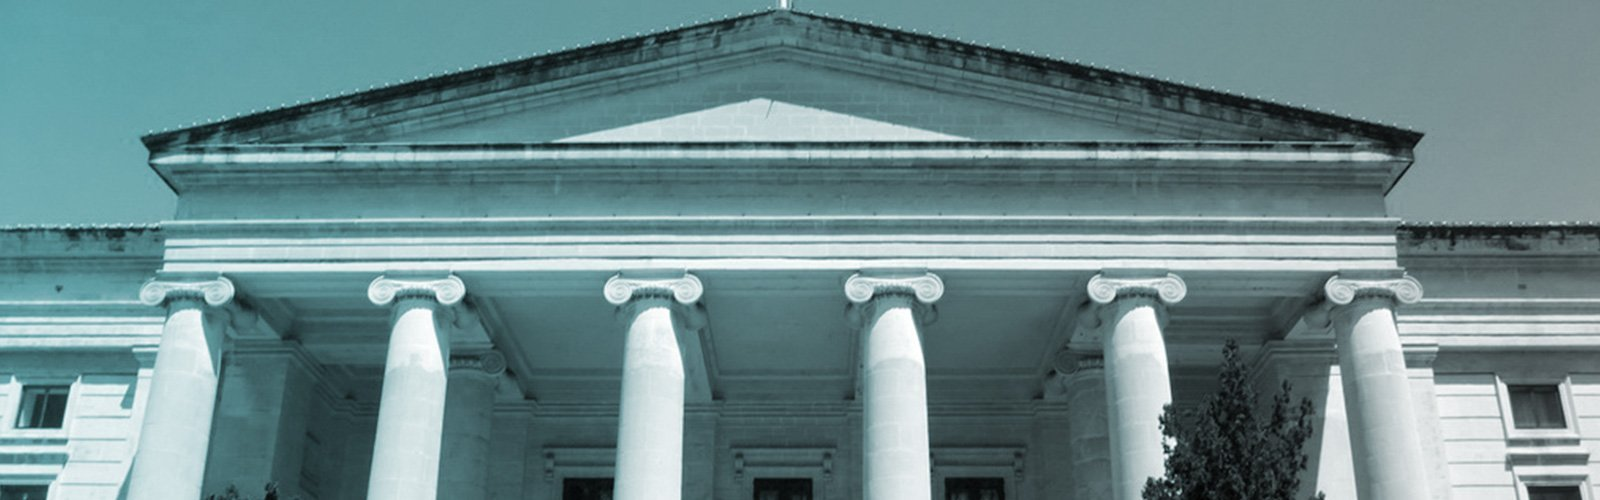 Landmark Judgement Sheds Light on Unconstitutionality of Pre-1995 Leases